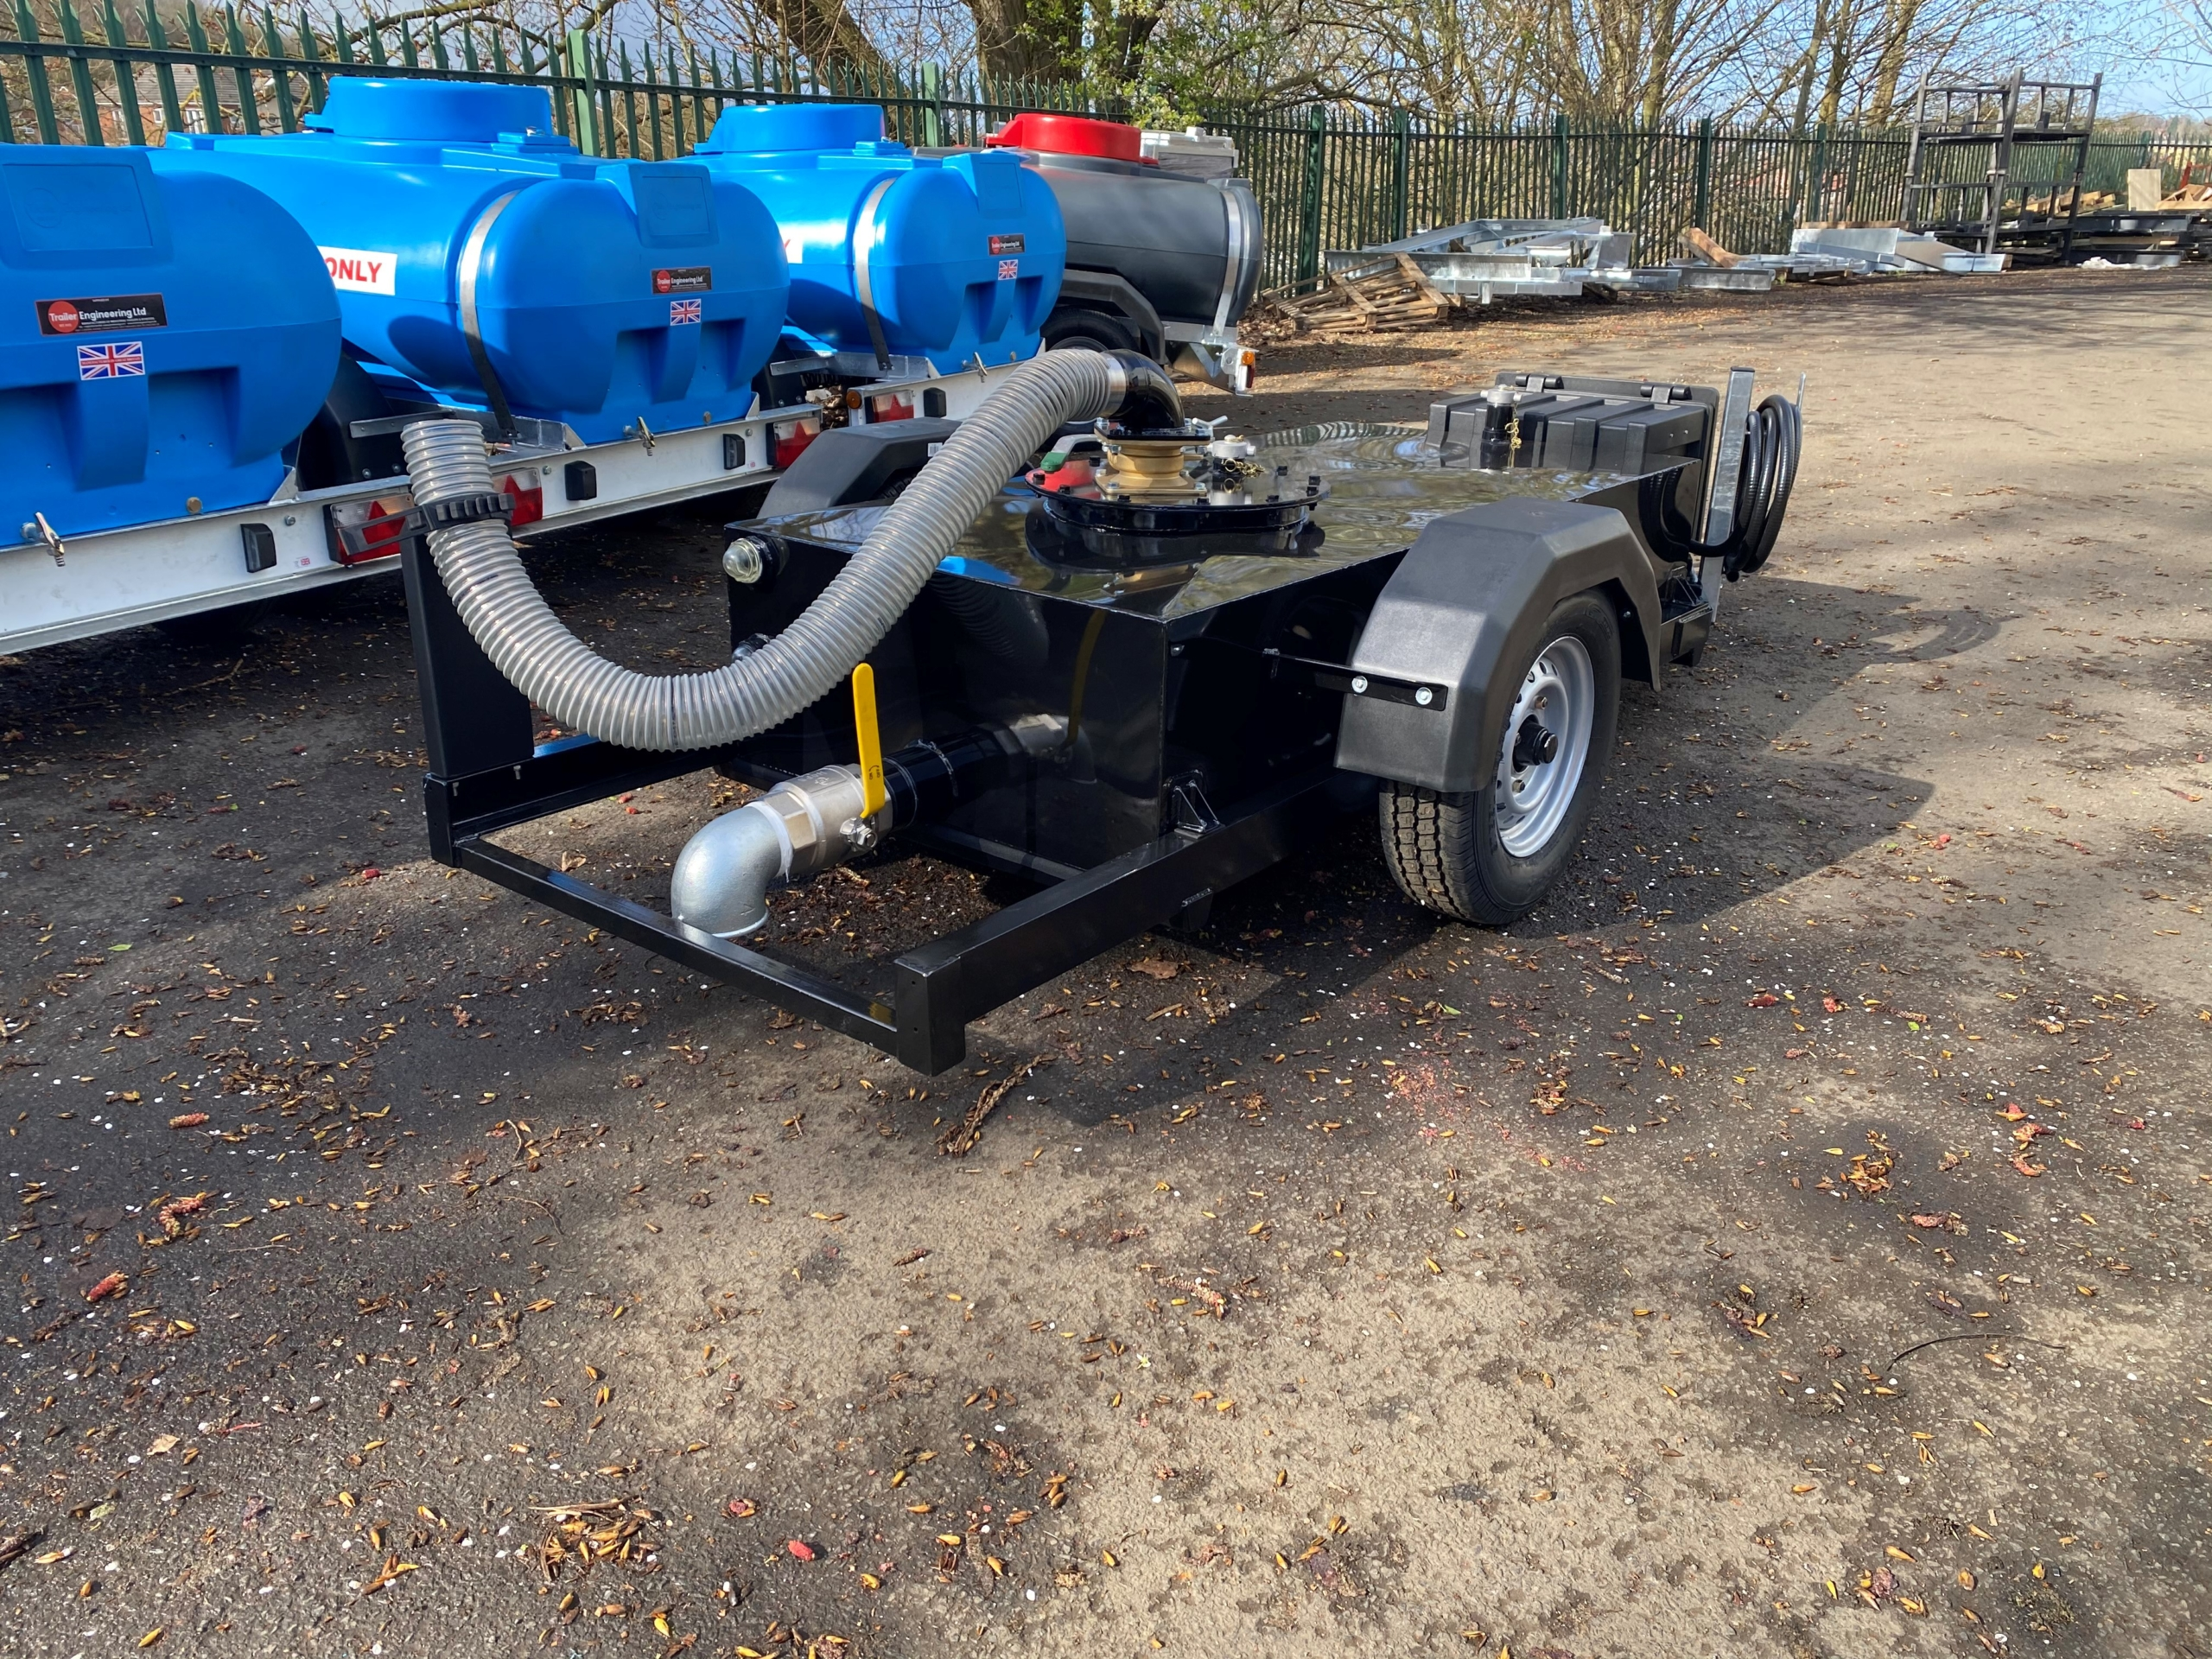 aircraft toilet lavertory tanker trailer scaled Private jet toilet tanker Trailer Engineering